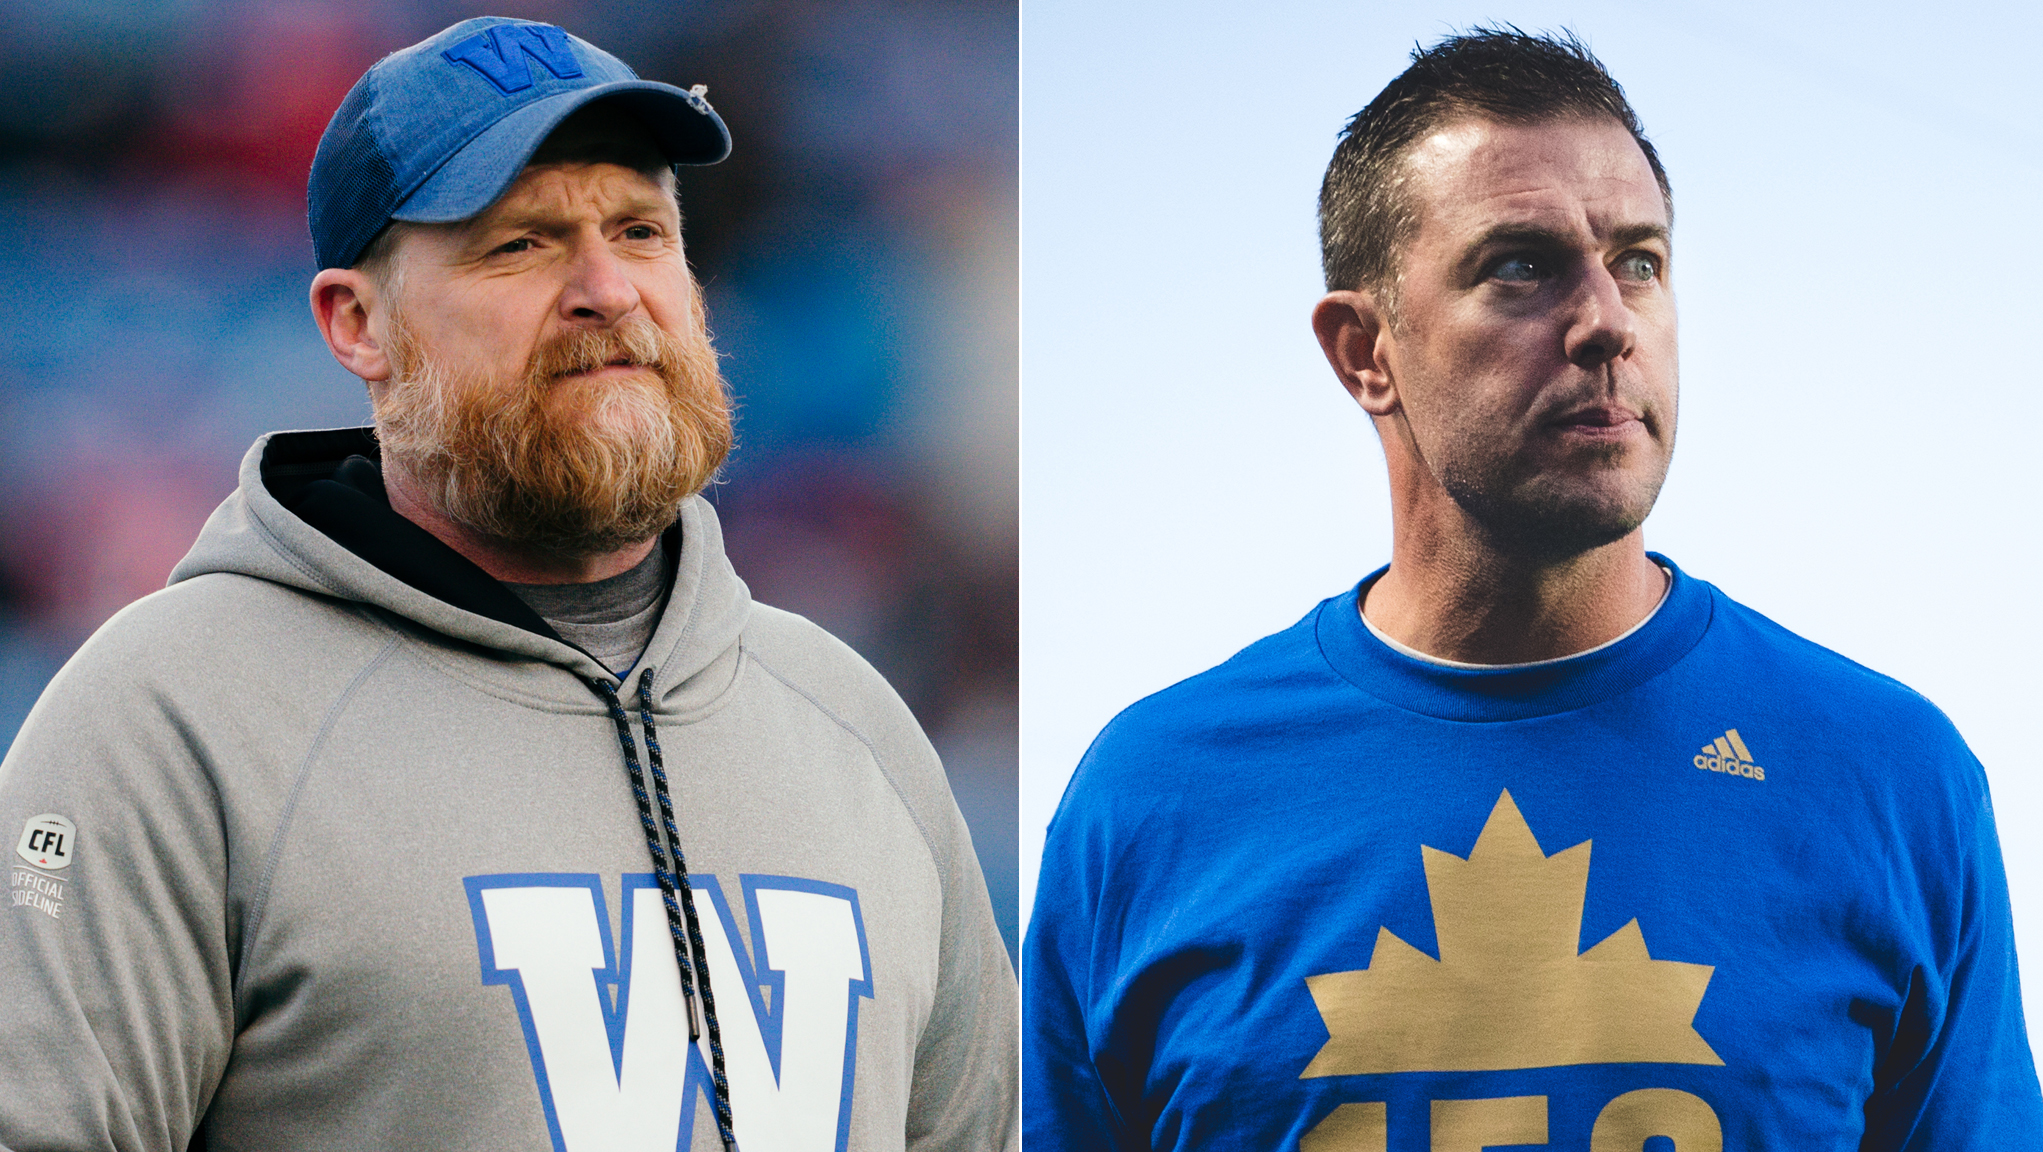 Bombers sign O'Shea, Walters to multi-year extensions - CFL.ca